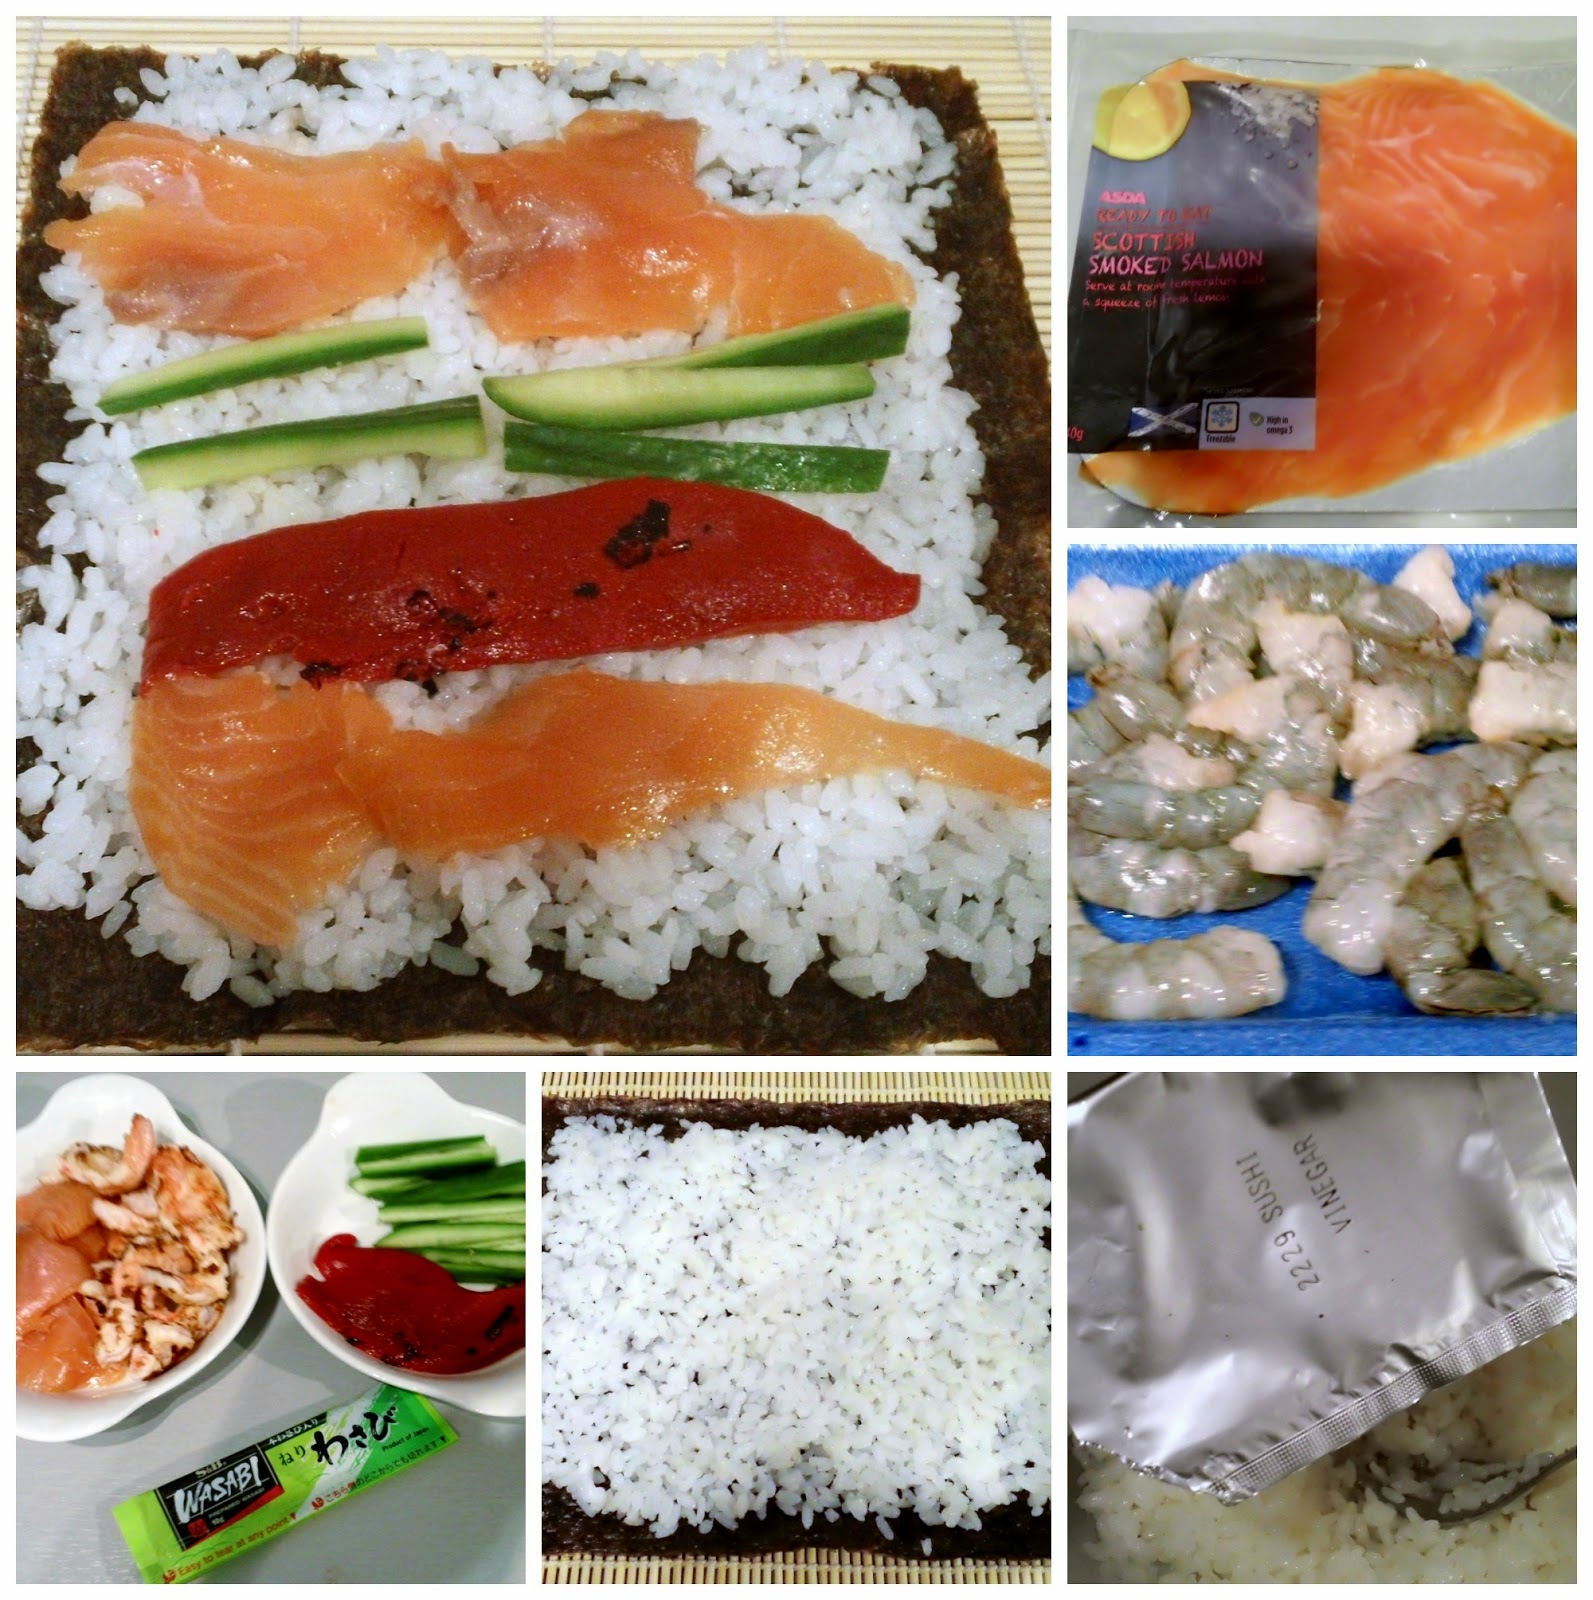 Homemade Sushi, Yutaka Sushi Kit, How to Make Sushi at Home, Japanese Food